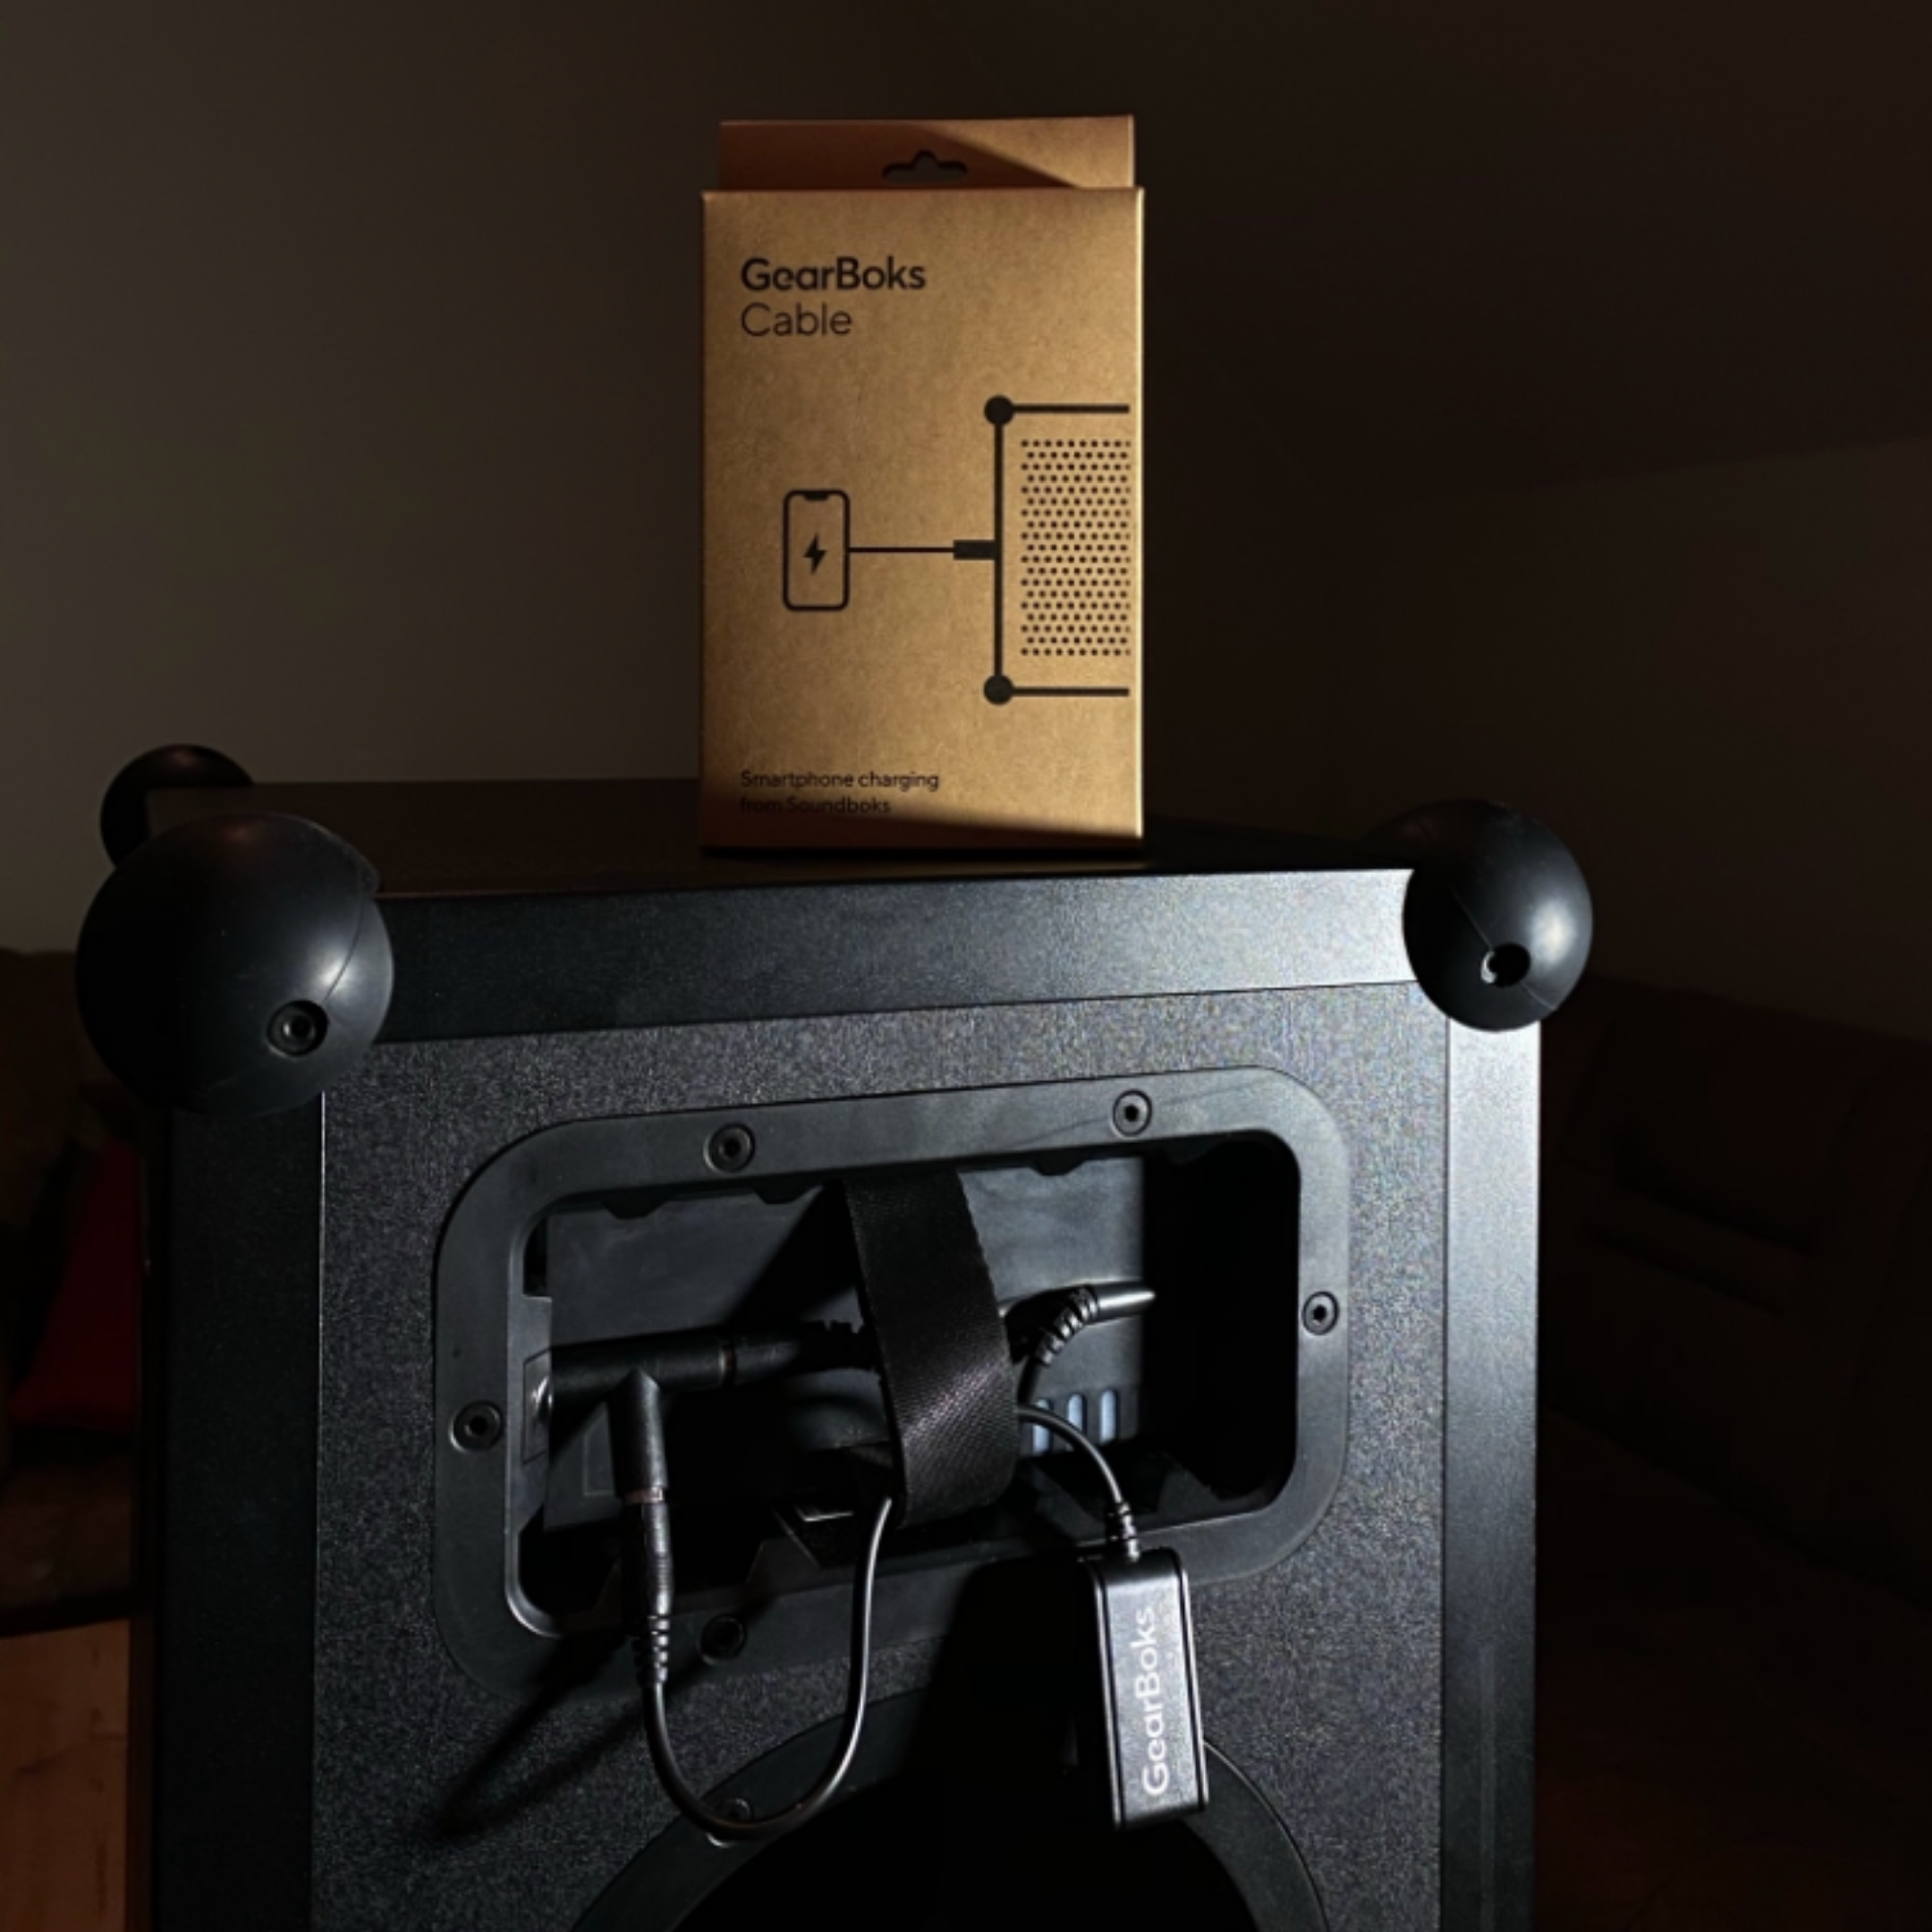 Gearboks connected to a SOUNDBOKS